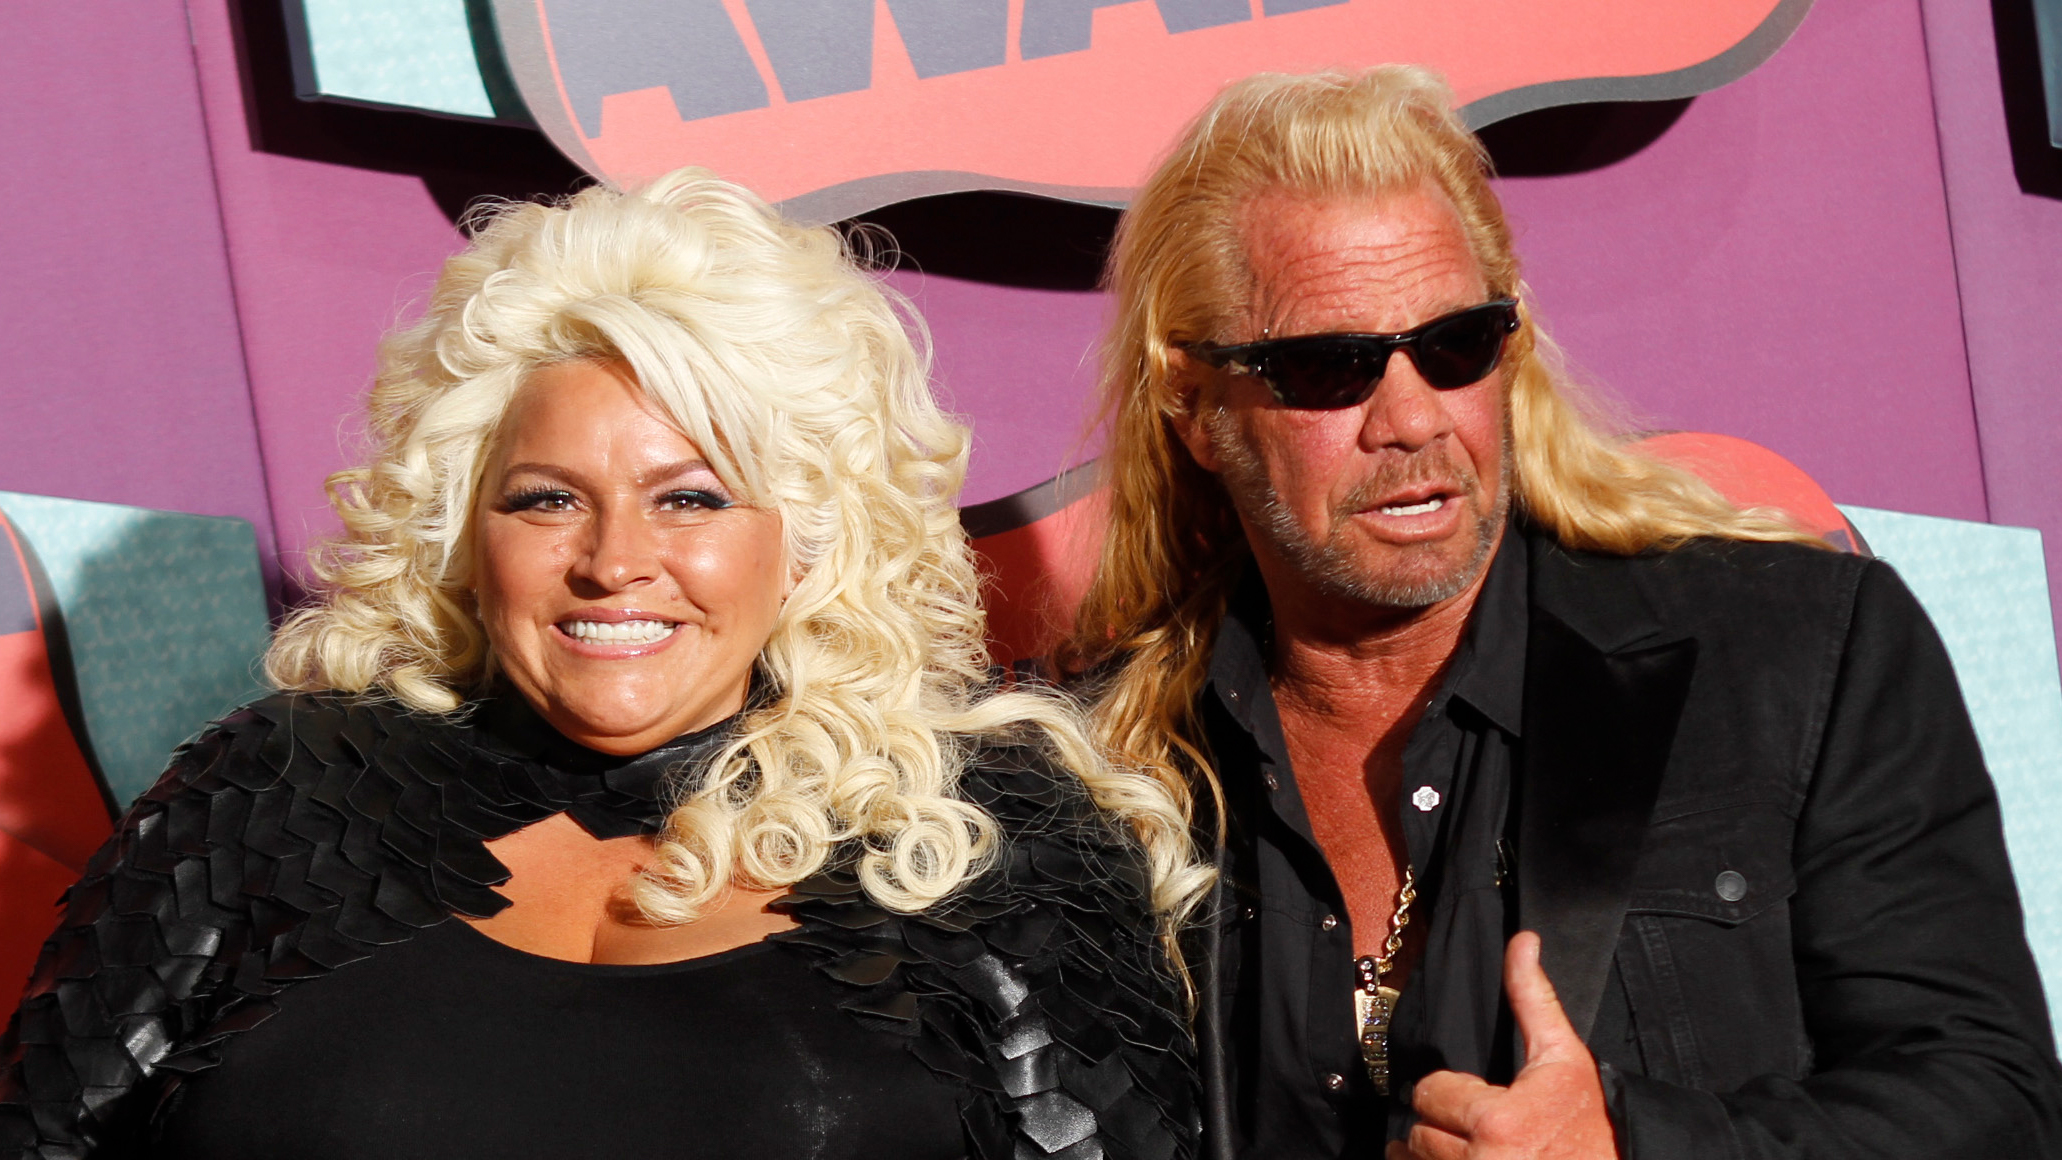 Beth Chapman, left, and Duane Chapman arrive at the CMT Music Awards at Bridgestone Arena on Wednesday, June 4, 2014, in Nashville, Tenn.